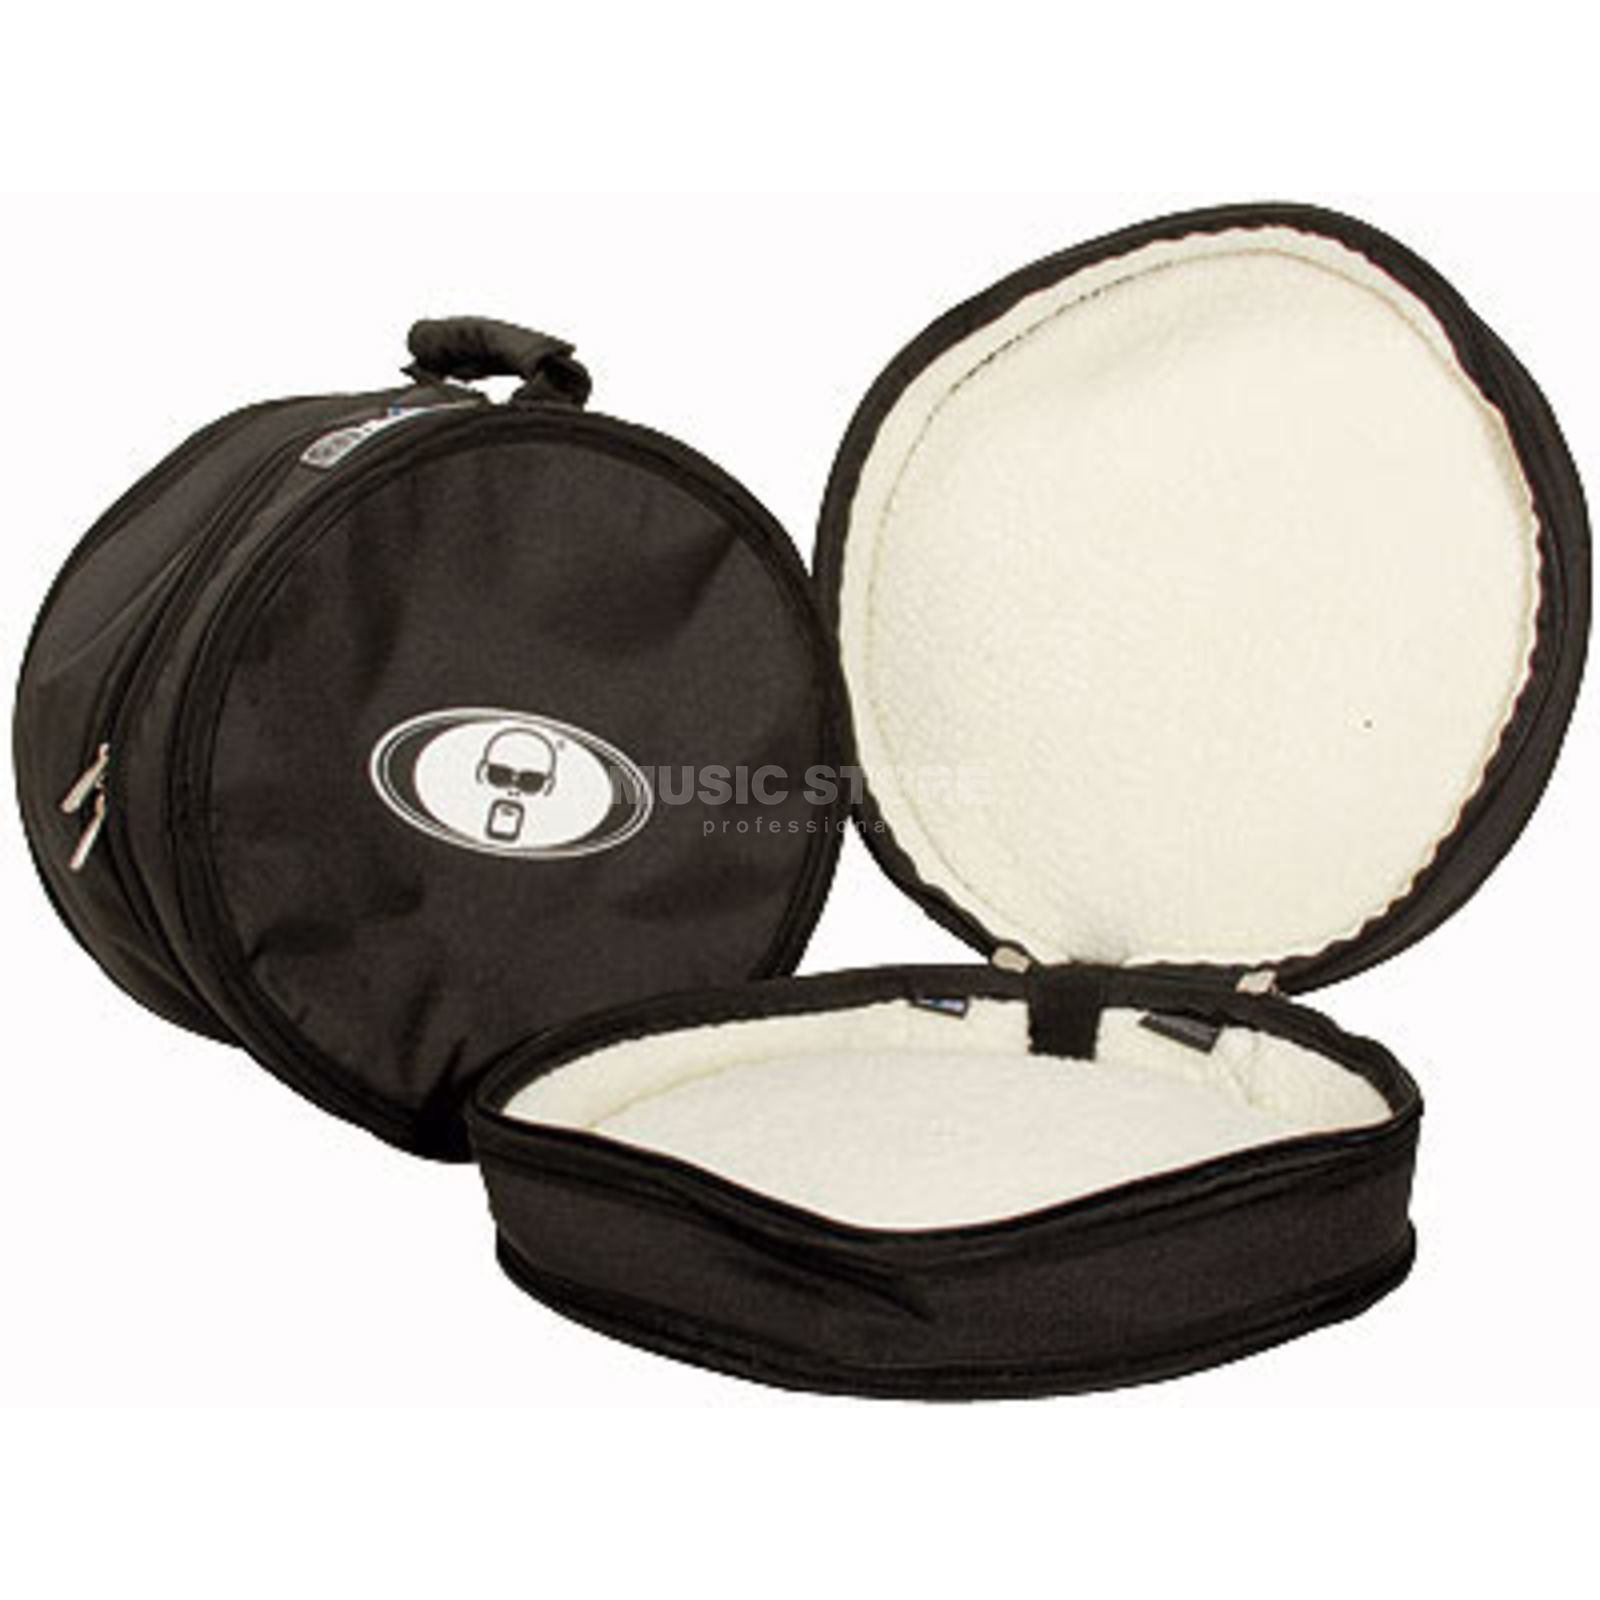 "Protection Racket Tom Bag 6016R, 16""x13"" with rims, Overstock Изображение товара"